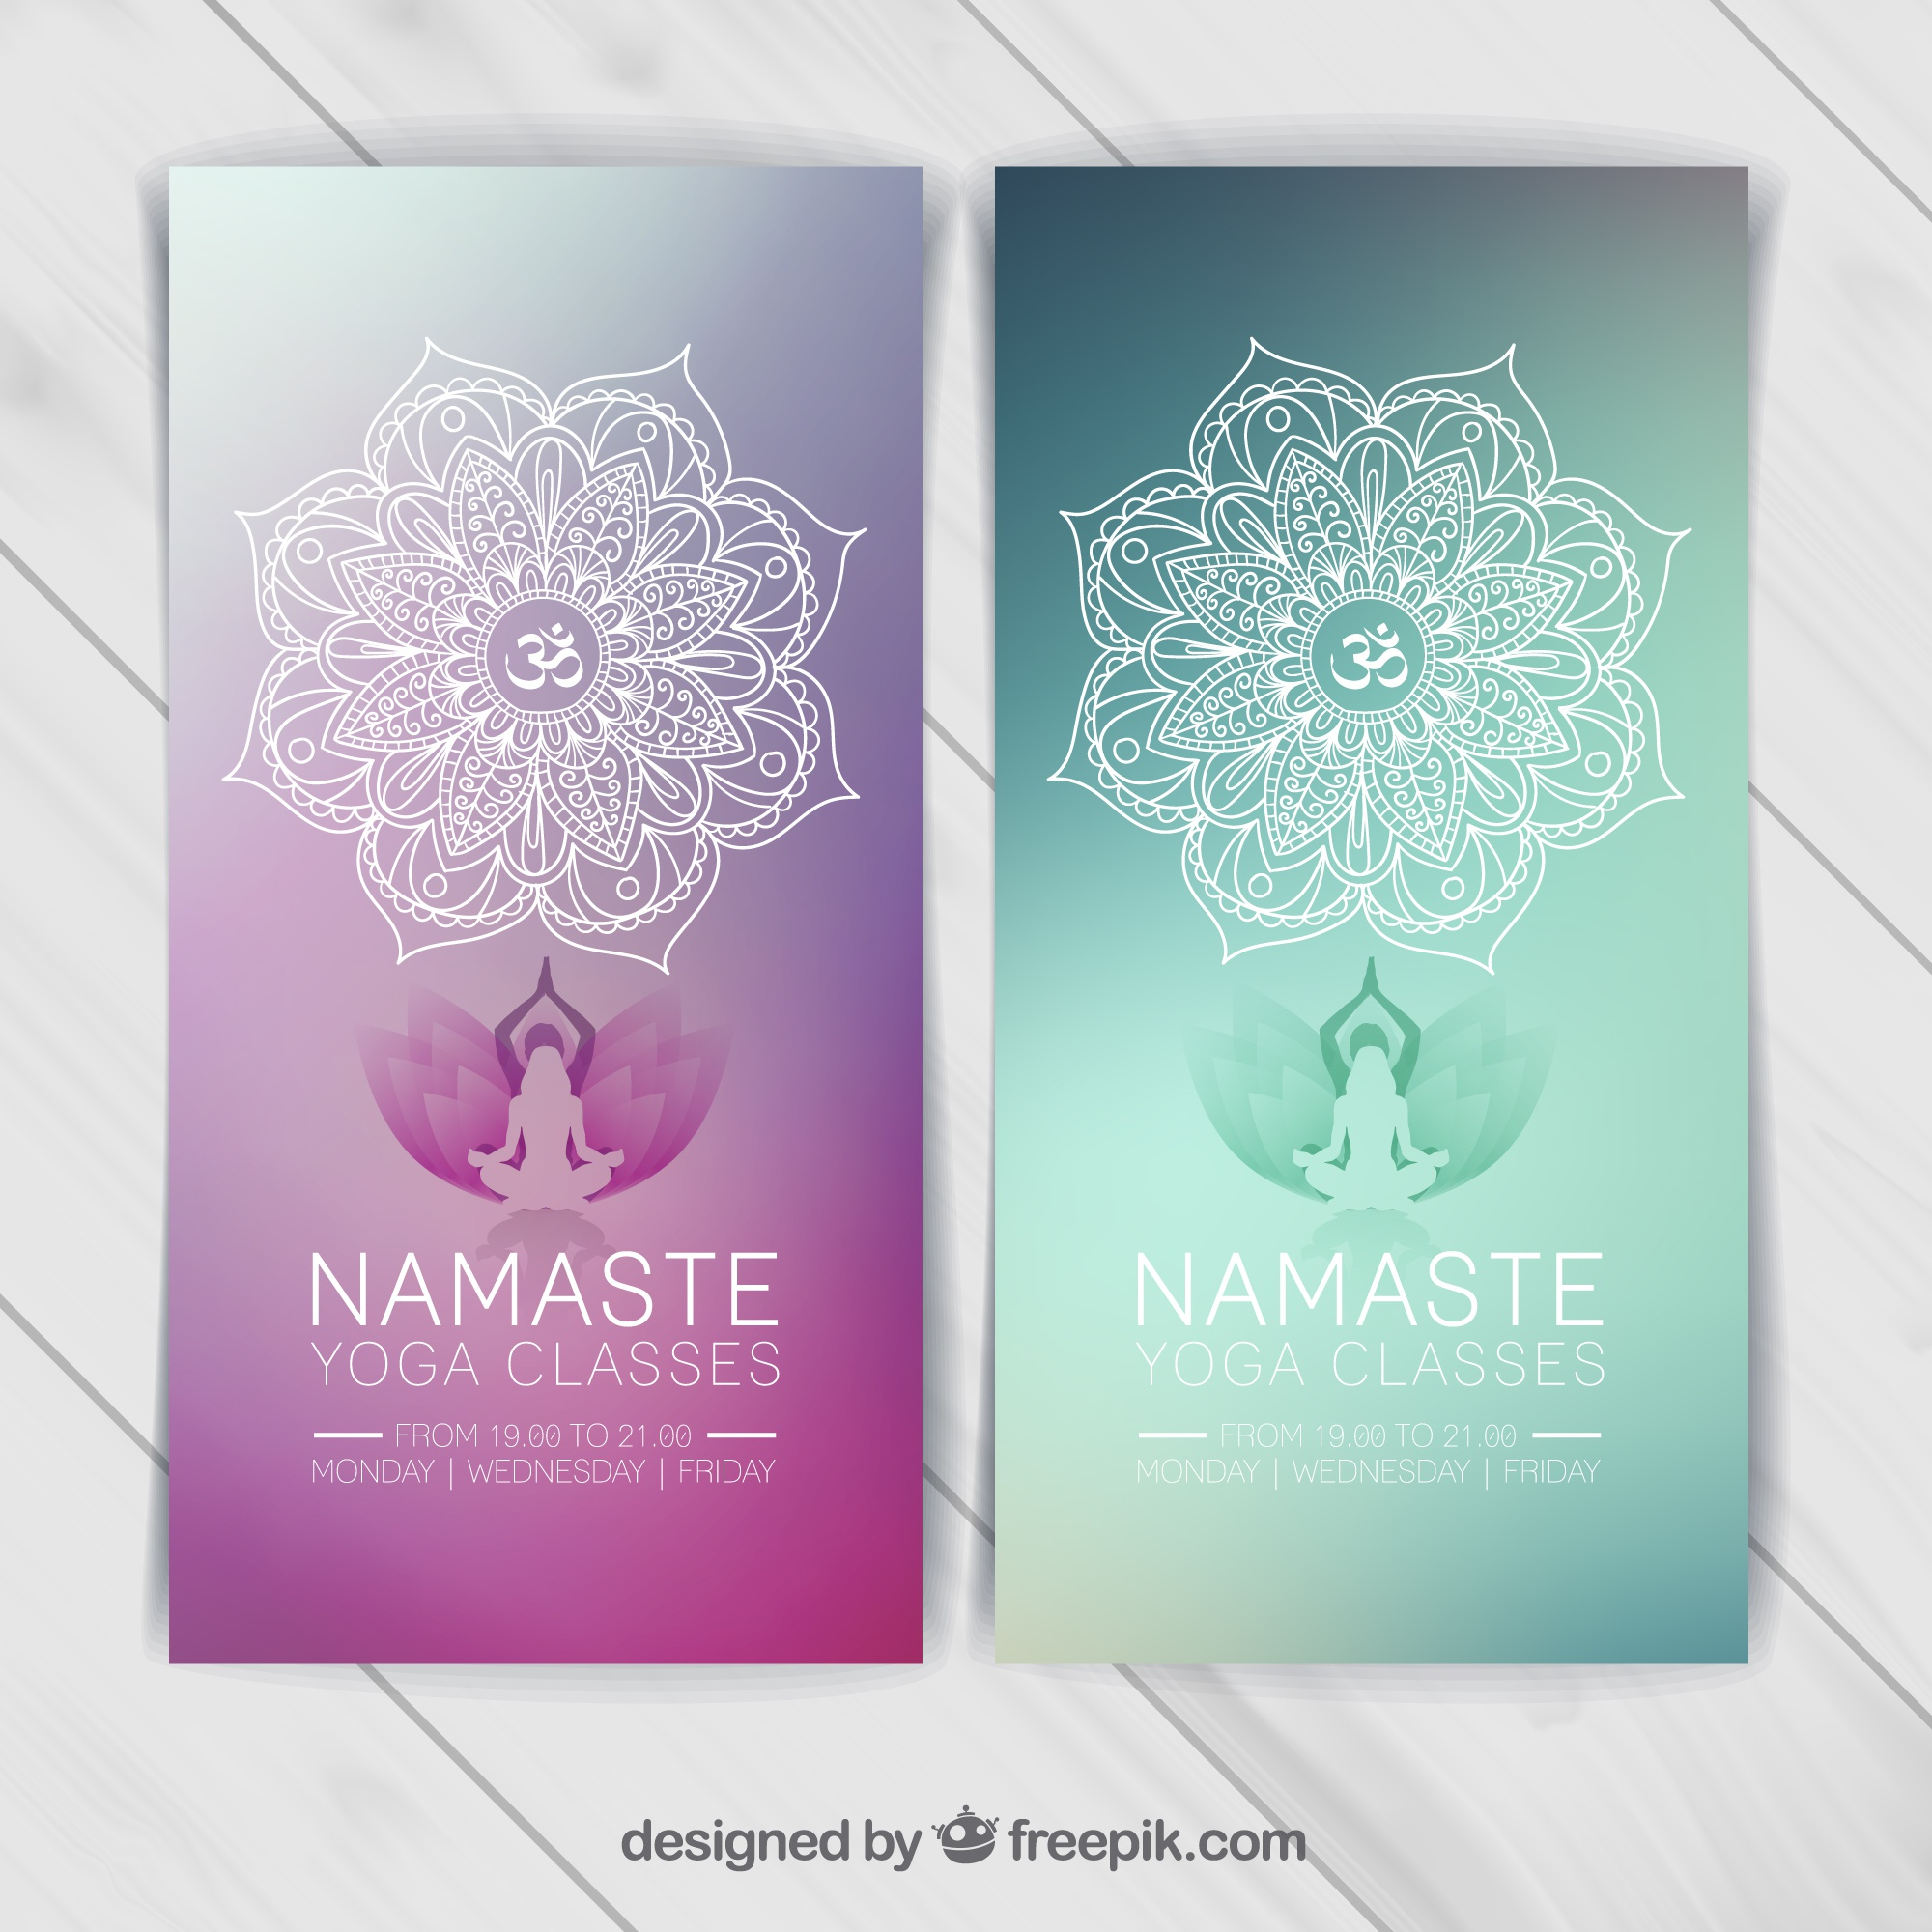 Template banners Yoga